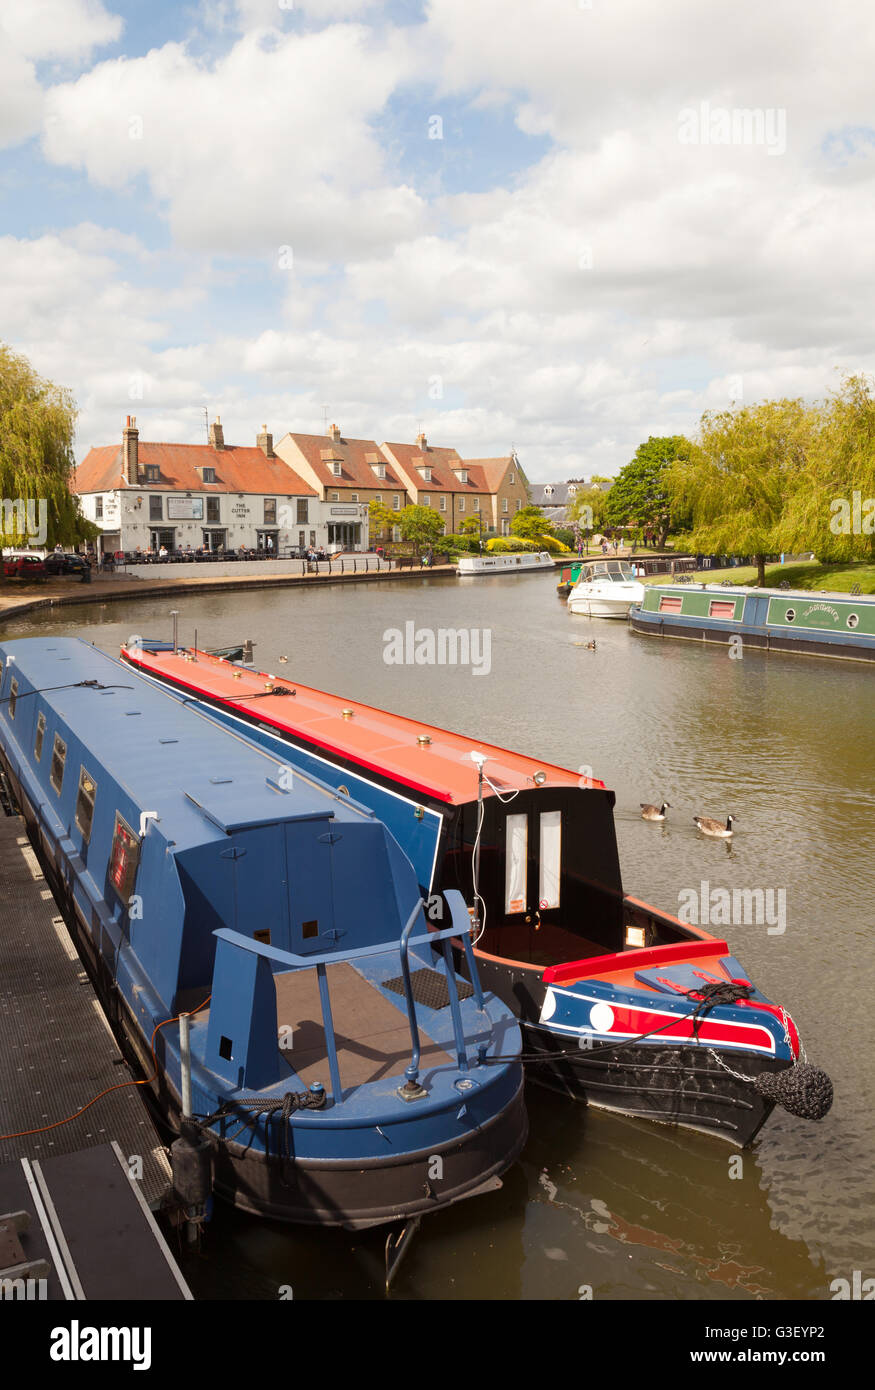 Narrow boats on the Great Ouse river at Ely, Cambridgeshire, East Anglia UK - Stock Image